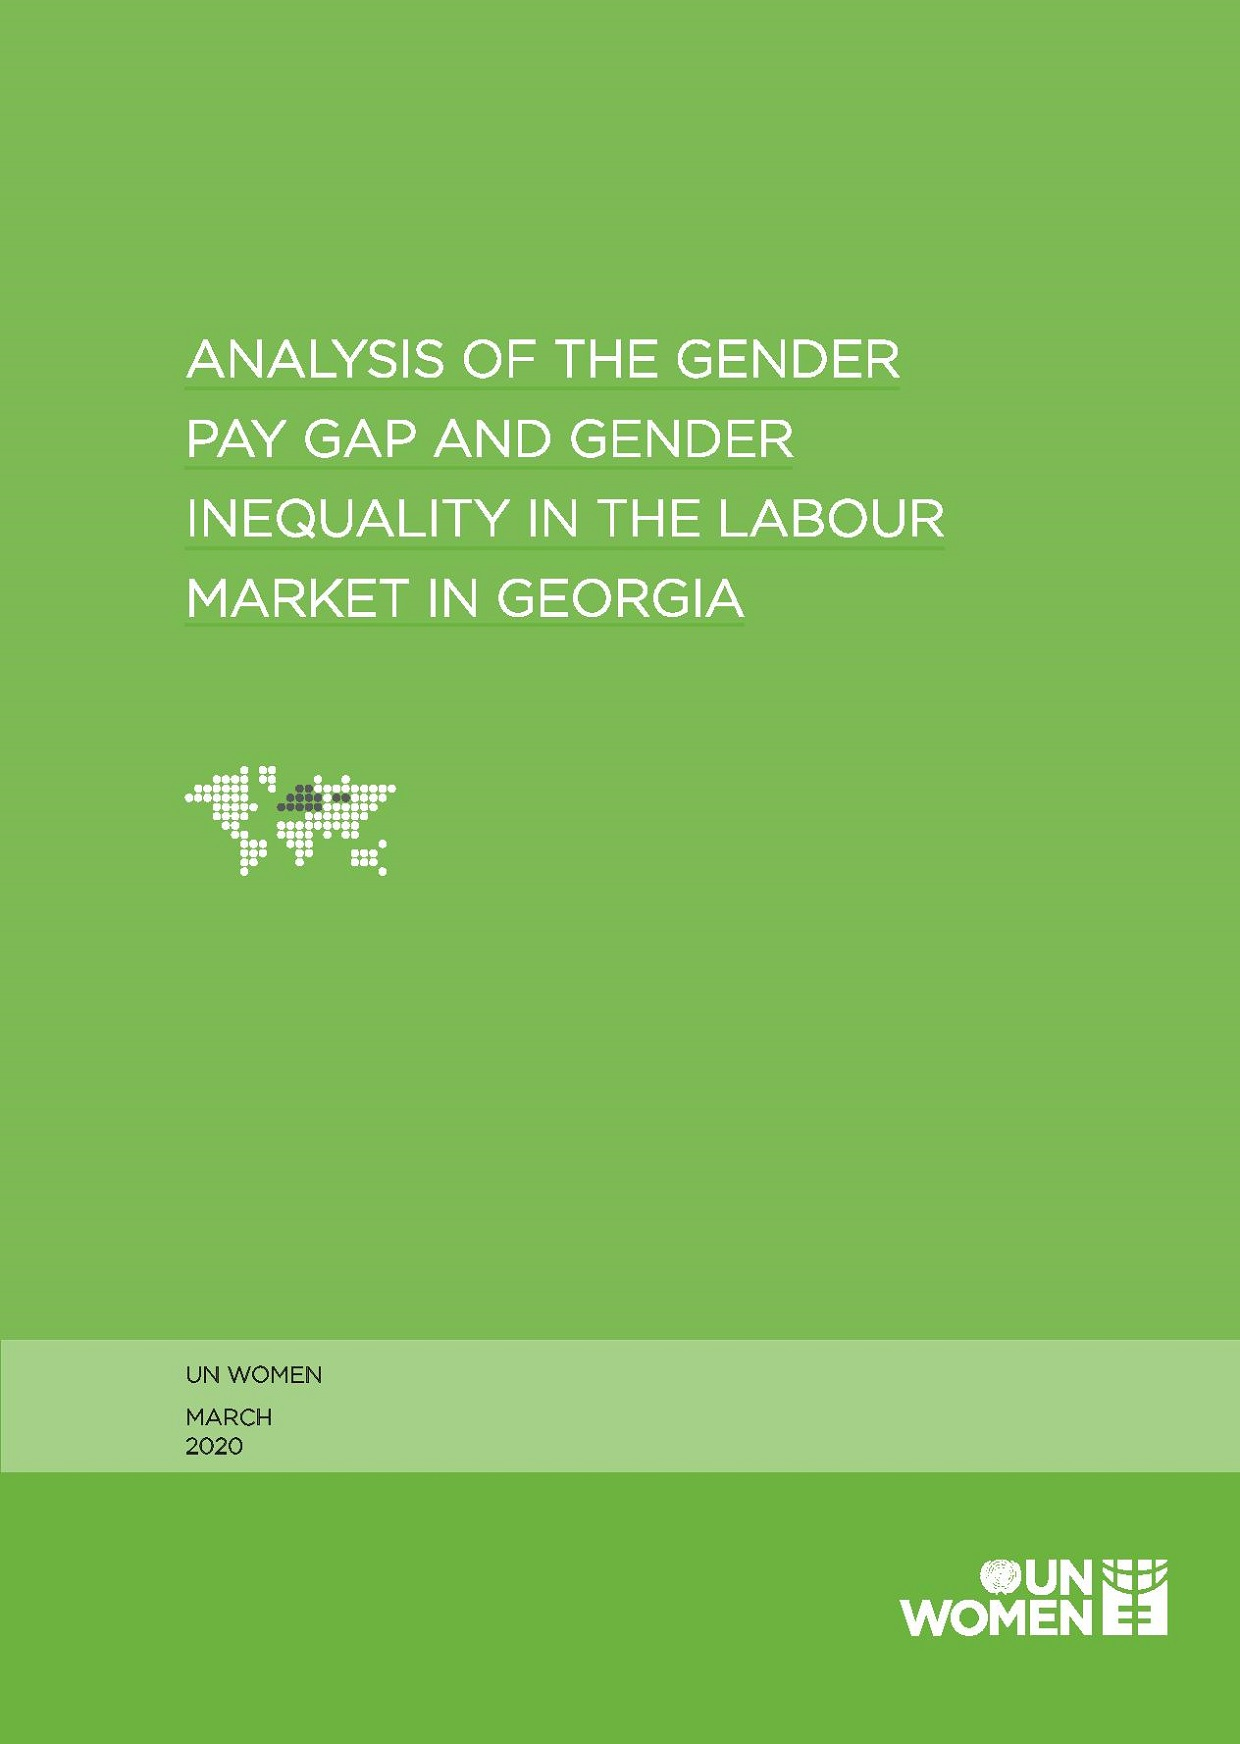 Analysis of the Gender Pay Gap and Gender Inequality in the Labor Market in Georgia